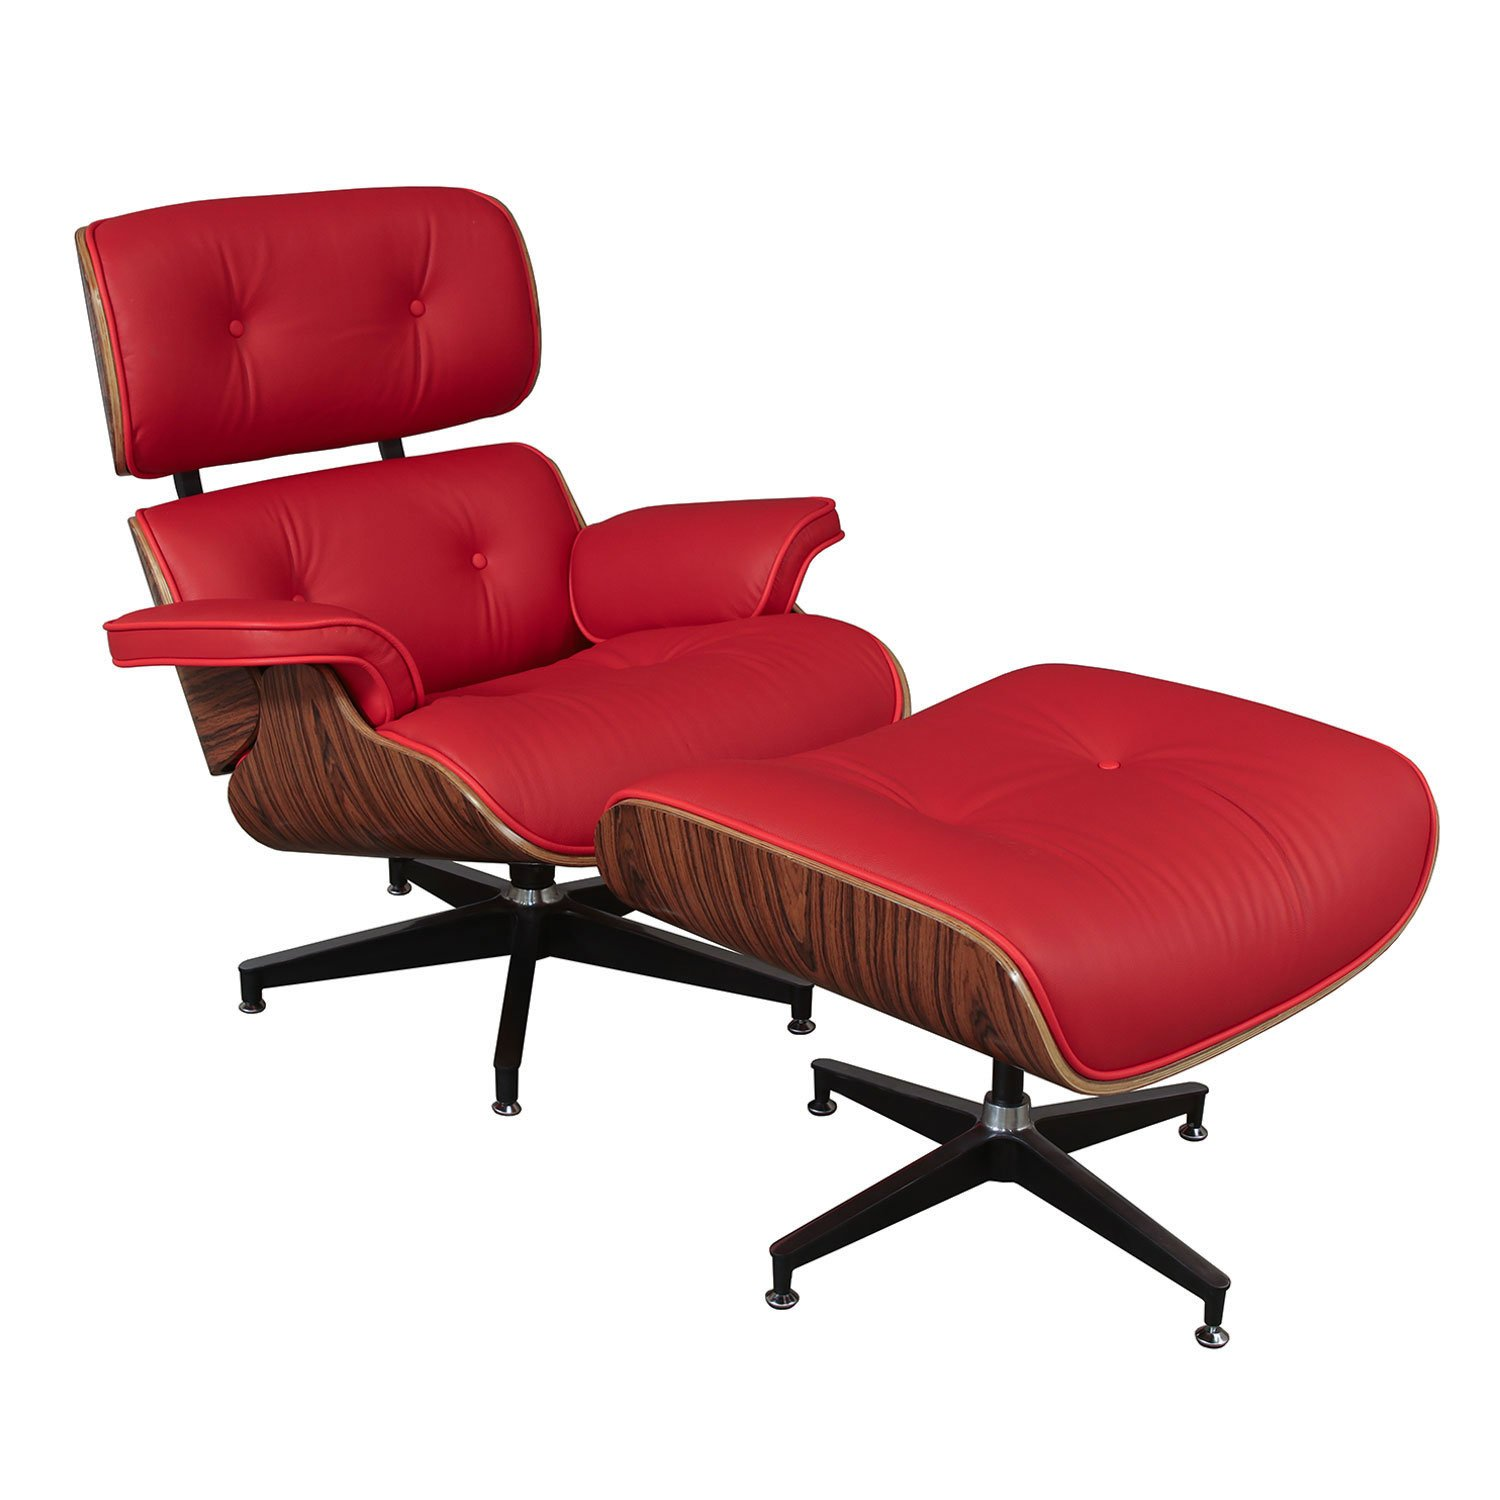 Eames Style Leather Lounge Chair Ottoman Reproduction By Gosit Red